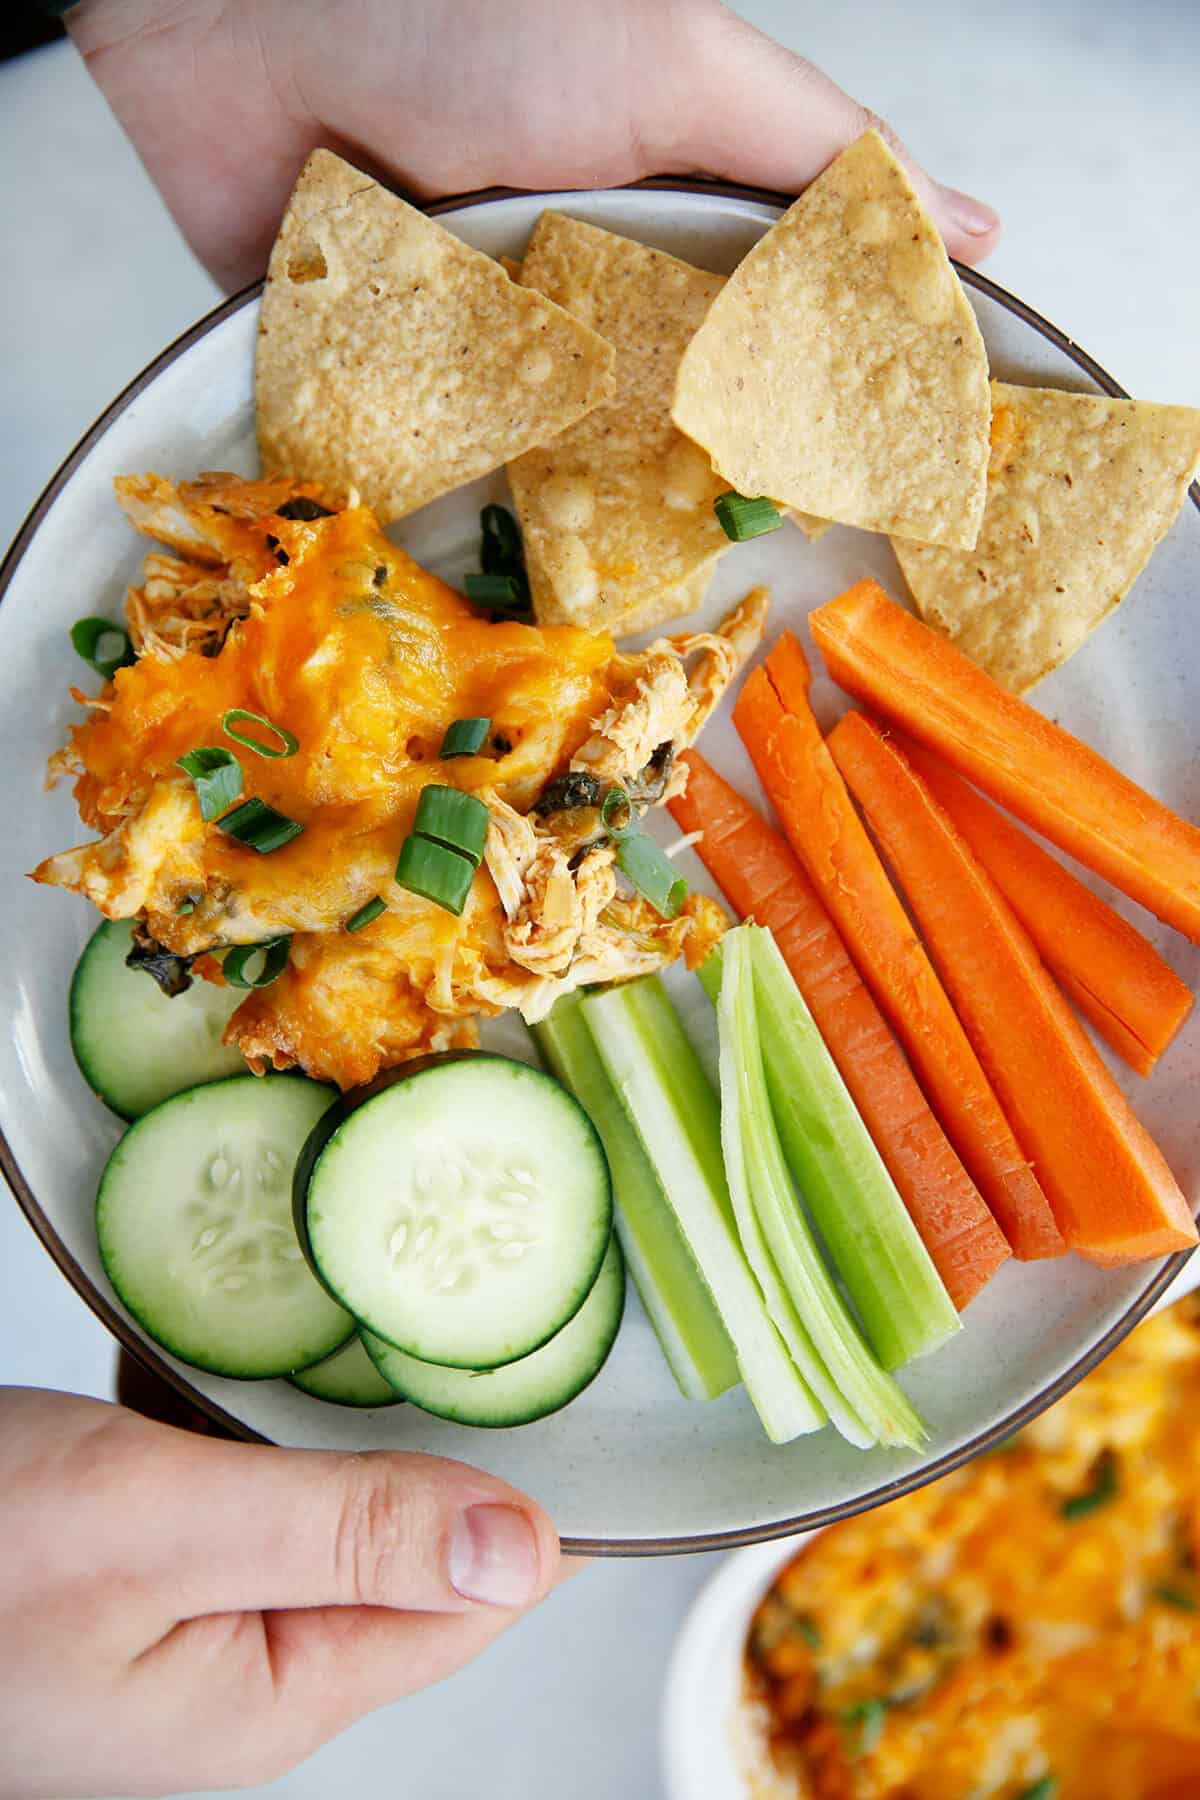 A plate of buffalo chicken dip with chips and veggies.